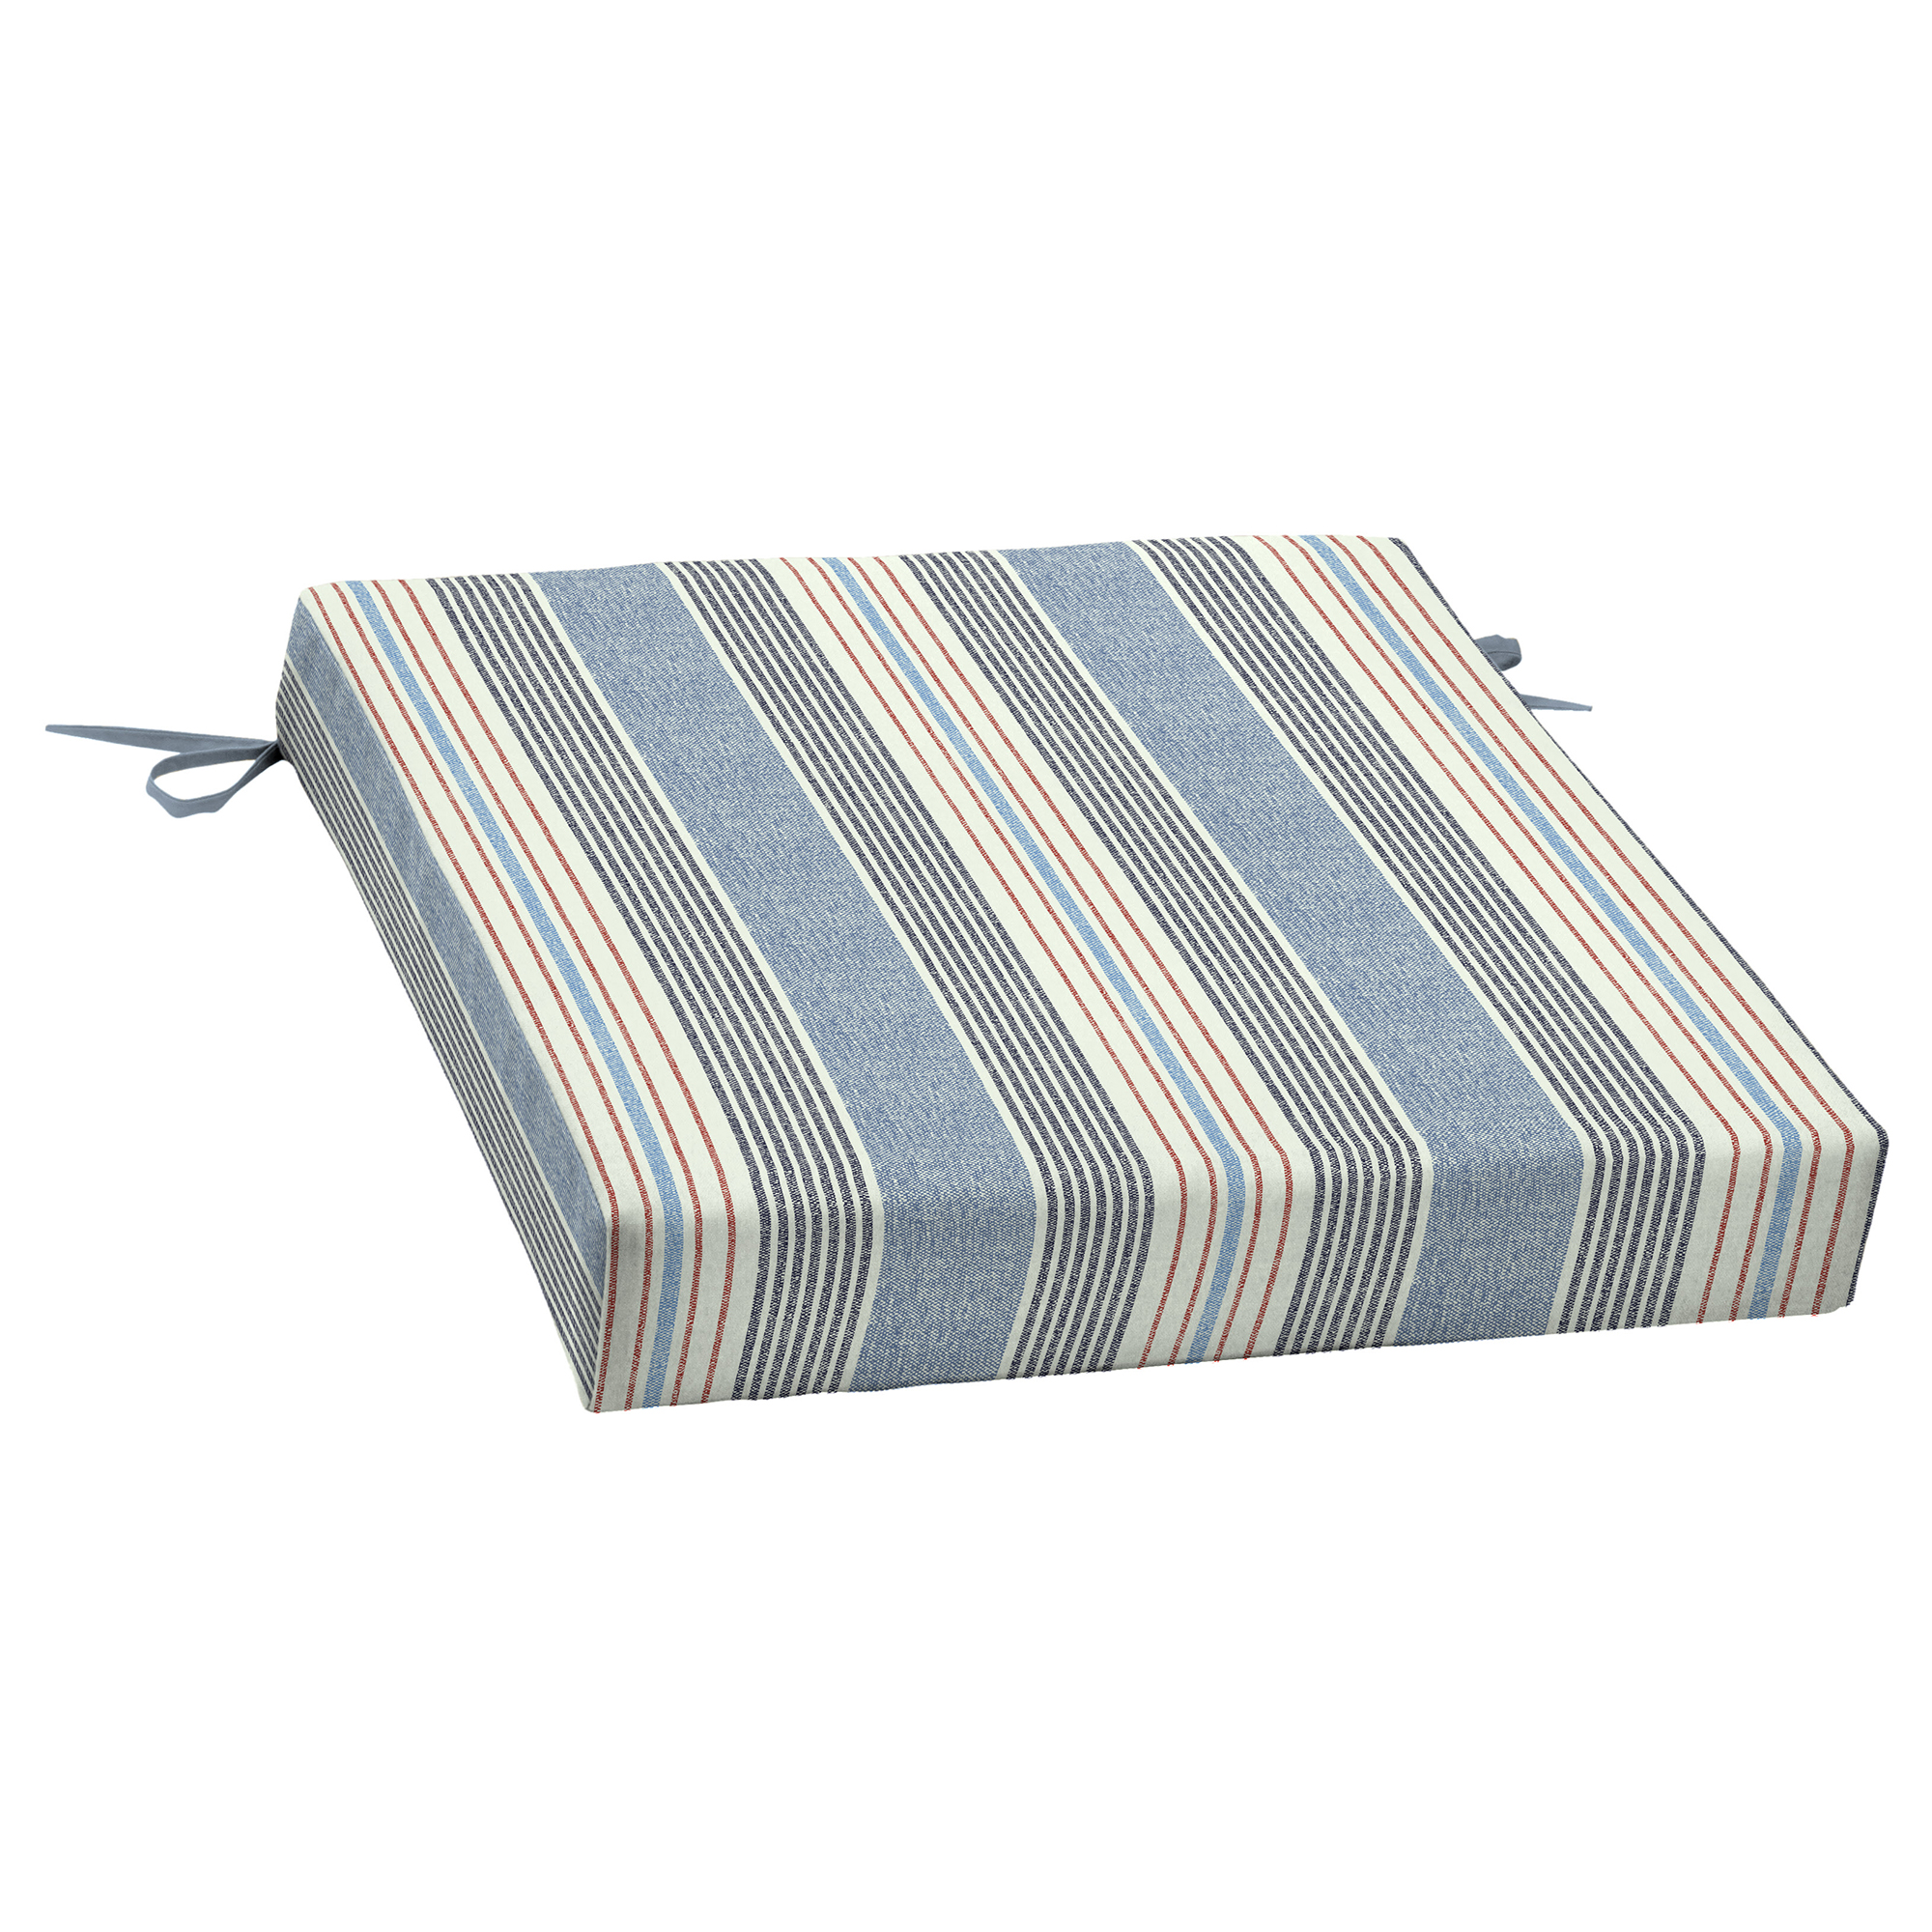 Better Homes & Gardens Hickory Stripe 21 x 21 in. Outdoor Dining Seat Cushion with EnviroGuard